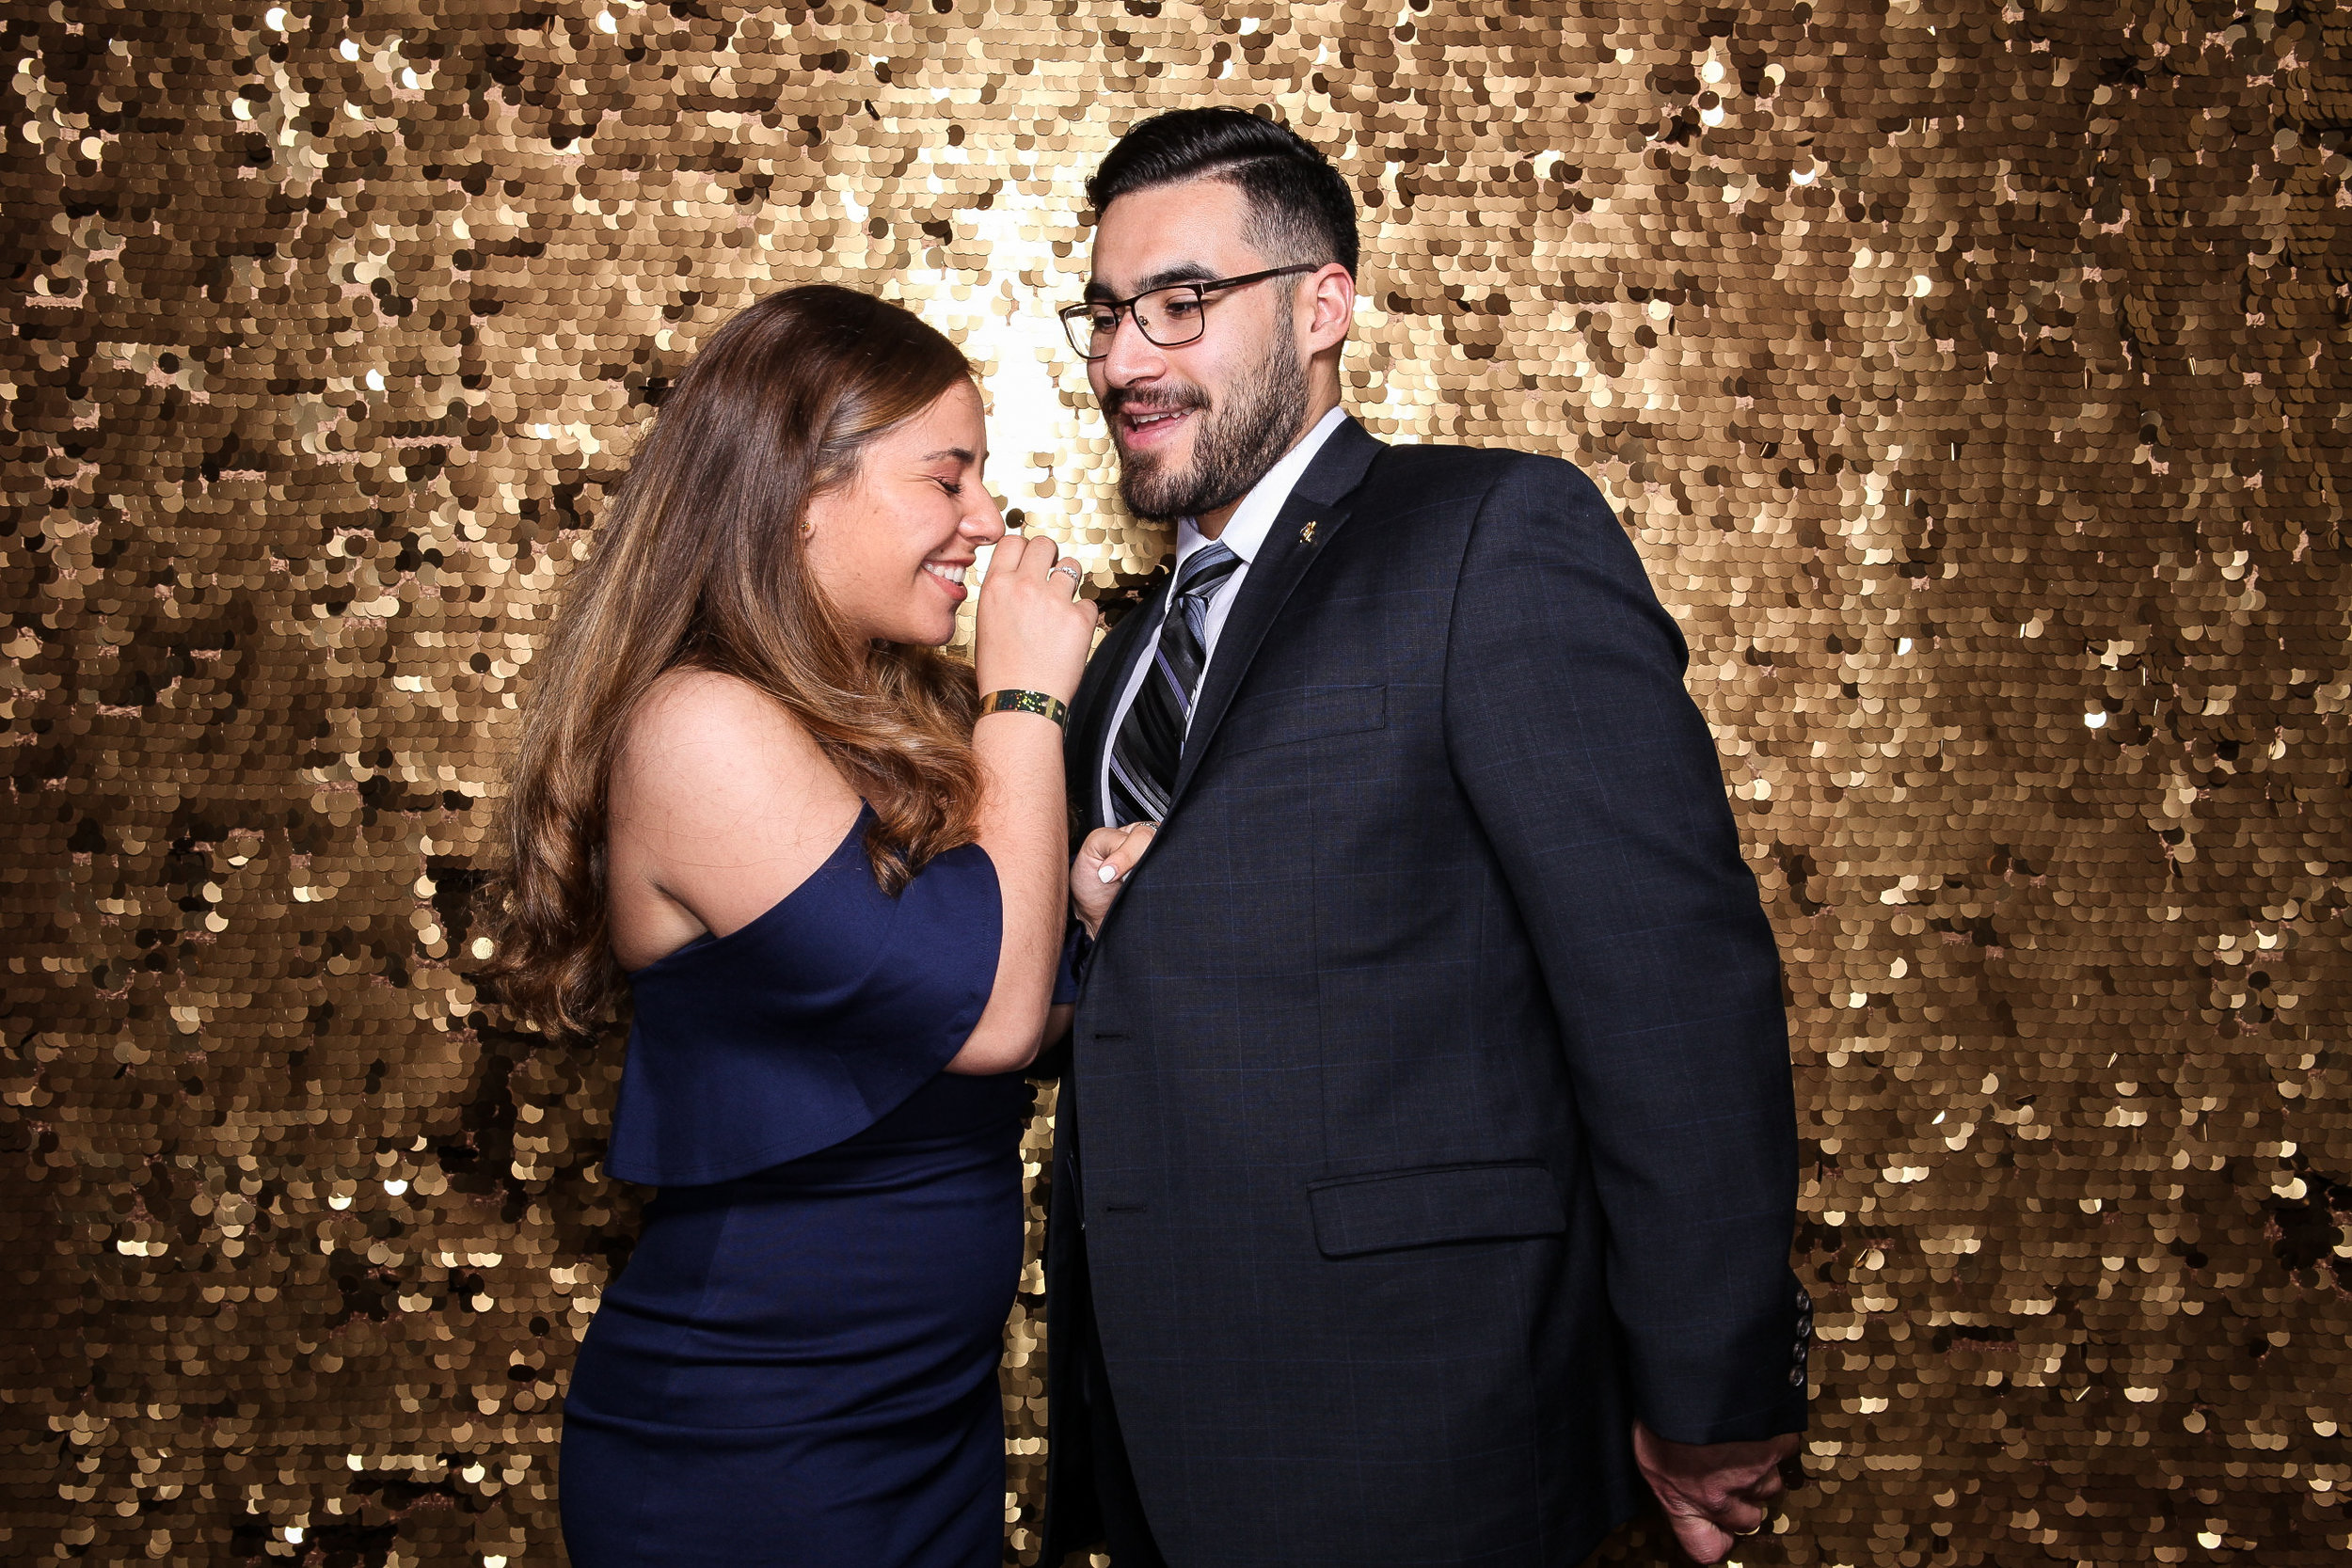 20190503_Adelphi_Senior_Formal-126.jpg